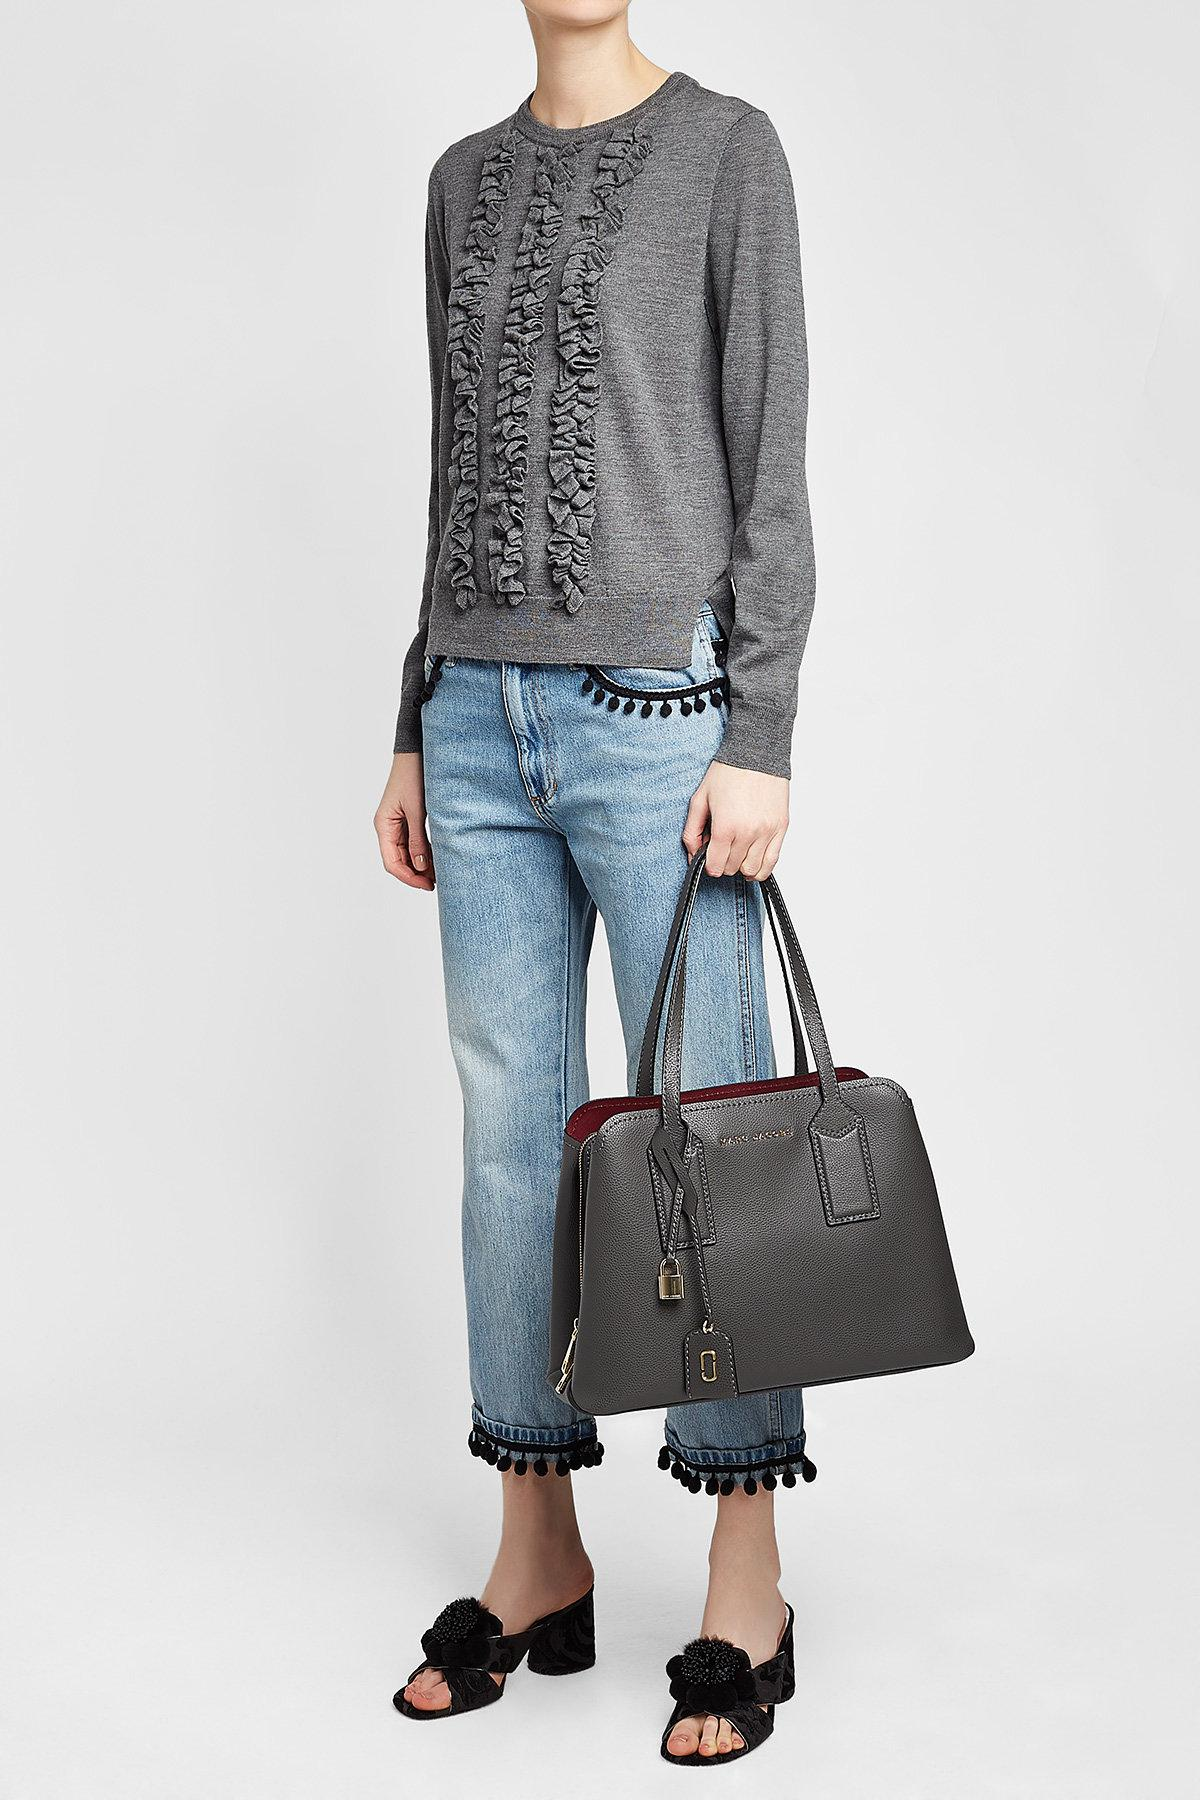 a14d1e47a46 Marc Jacobs Multicolor The Editor Leather Tote